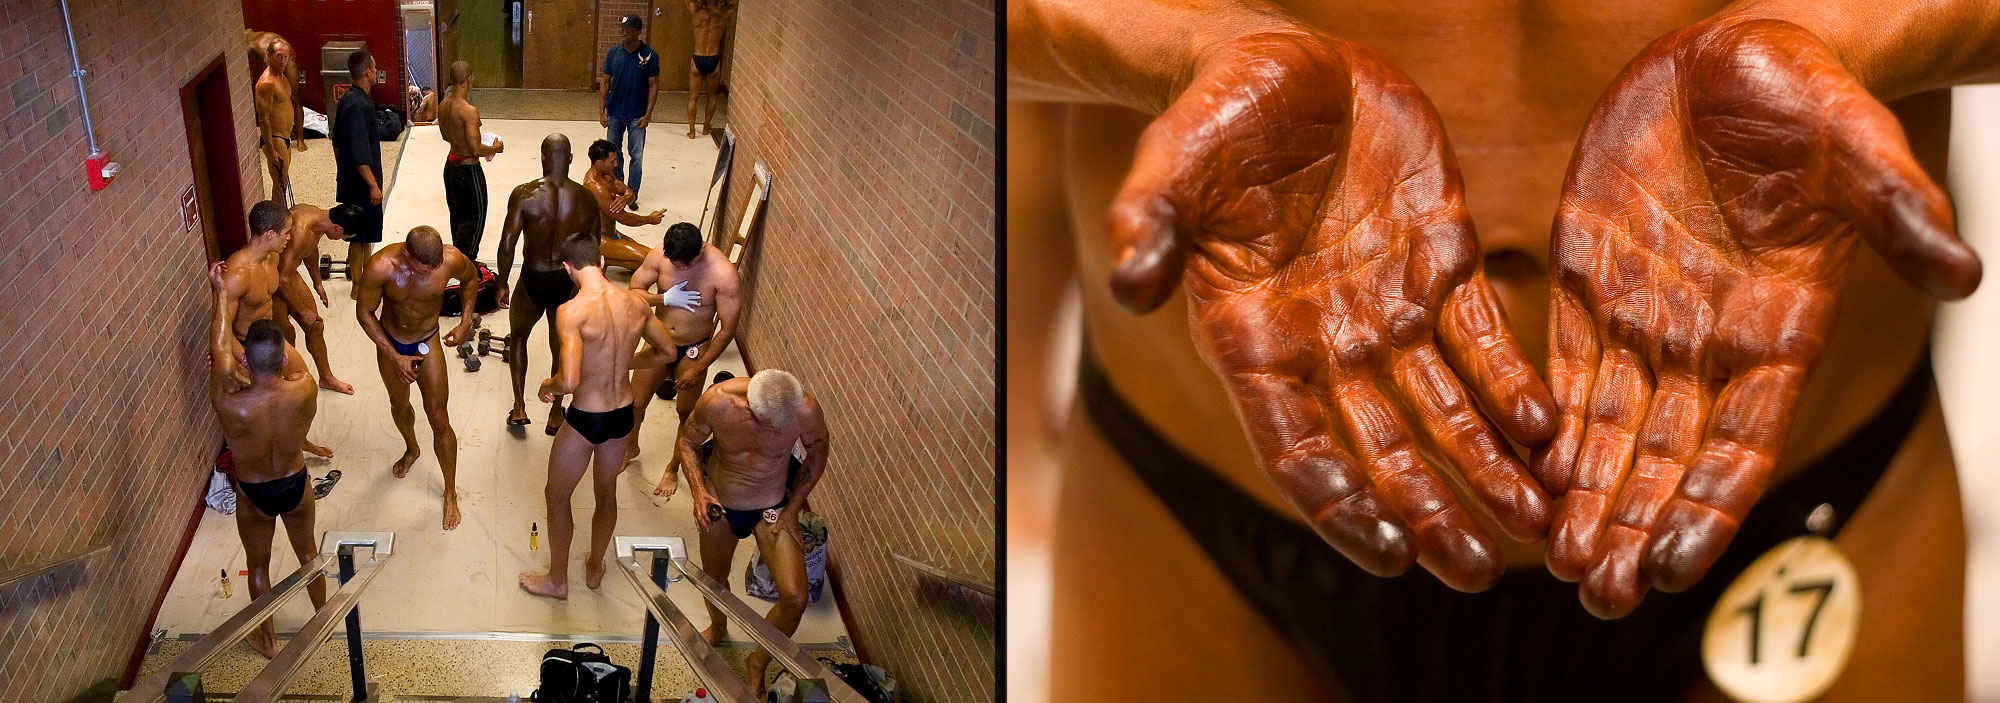 Right image: A competitor holds out his hands which are covered in self tanning cream. Left image: Competitors gather backstage to prepare for the Potomac Cup.